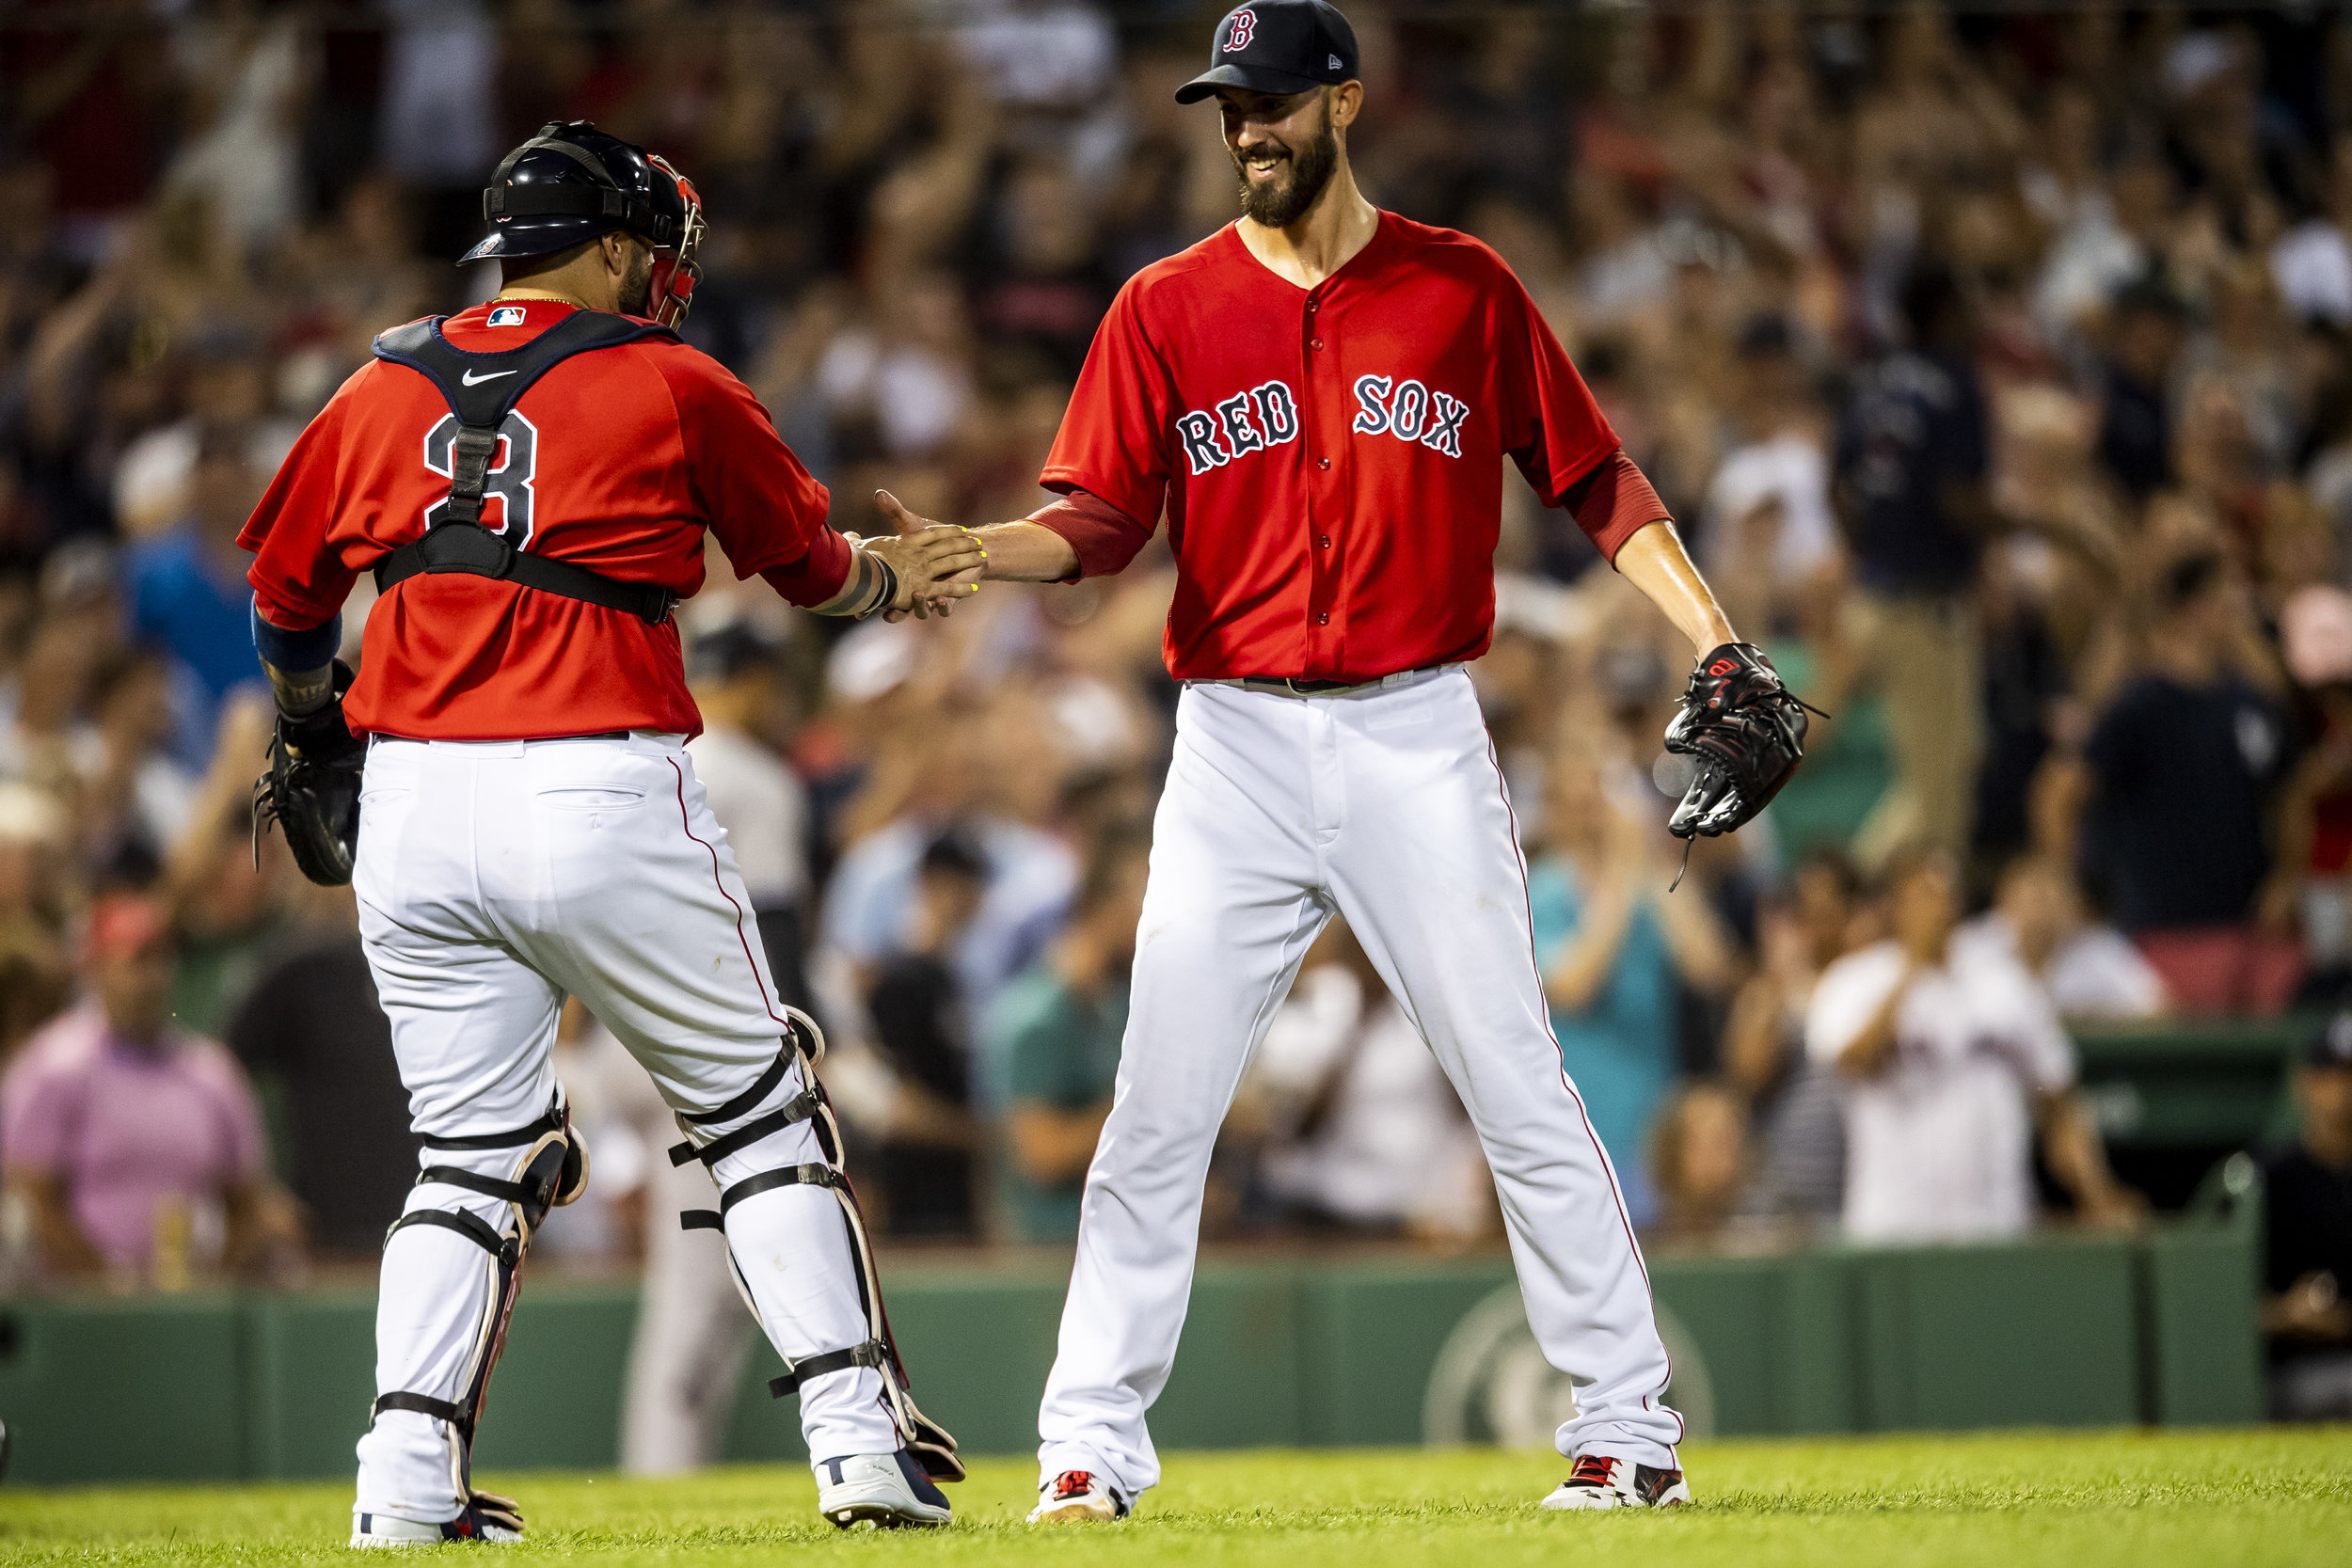 August 3, 2018, Boston, MA: Boston Red Sox pitcher Rick Porcello celebrates with Boston Red Sox catcher Sandy Leon after  pitching a one hit complete game after the Boston Red Sox defeated the New York Yankees at Fenway Park in Boston, Massachusetts on Friday, August 3, 2018. (Photo by Matthew Thomas/Boston Red Sox)